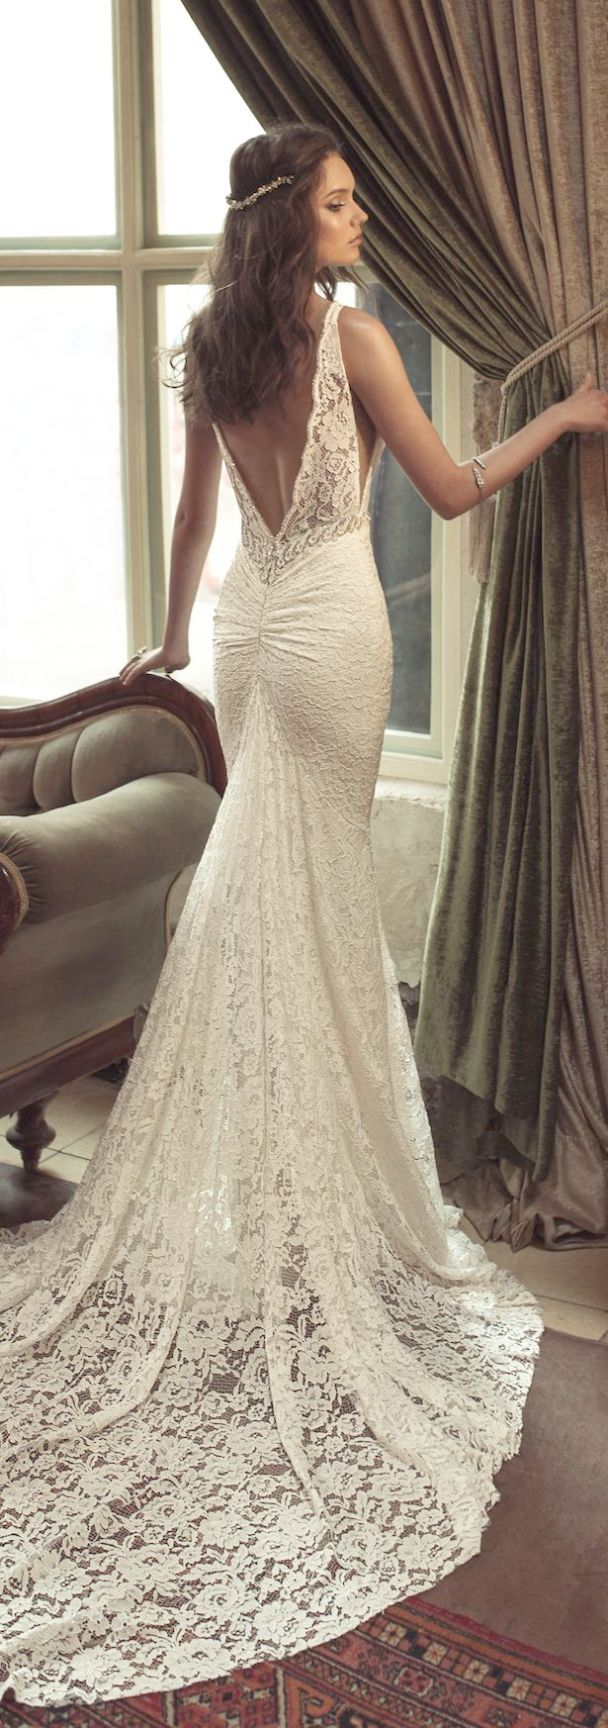 Lace wedding dresses at kleinfeld off the shoulder lace a line